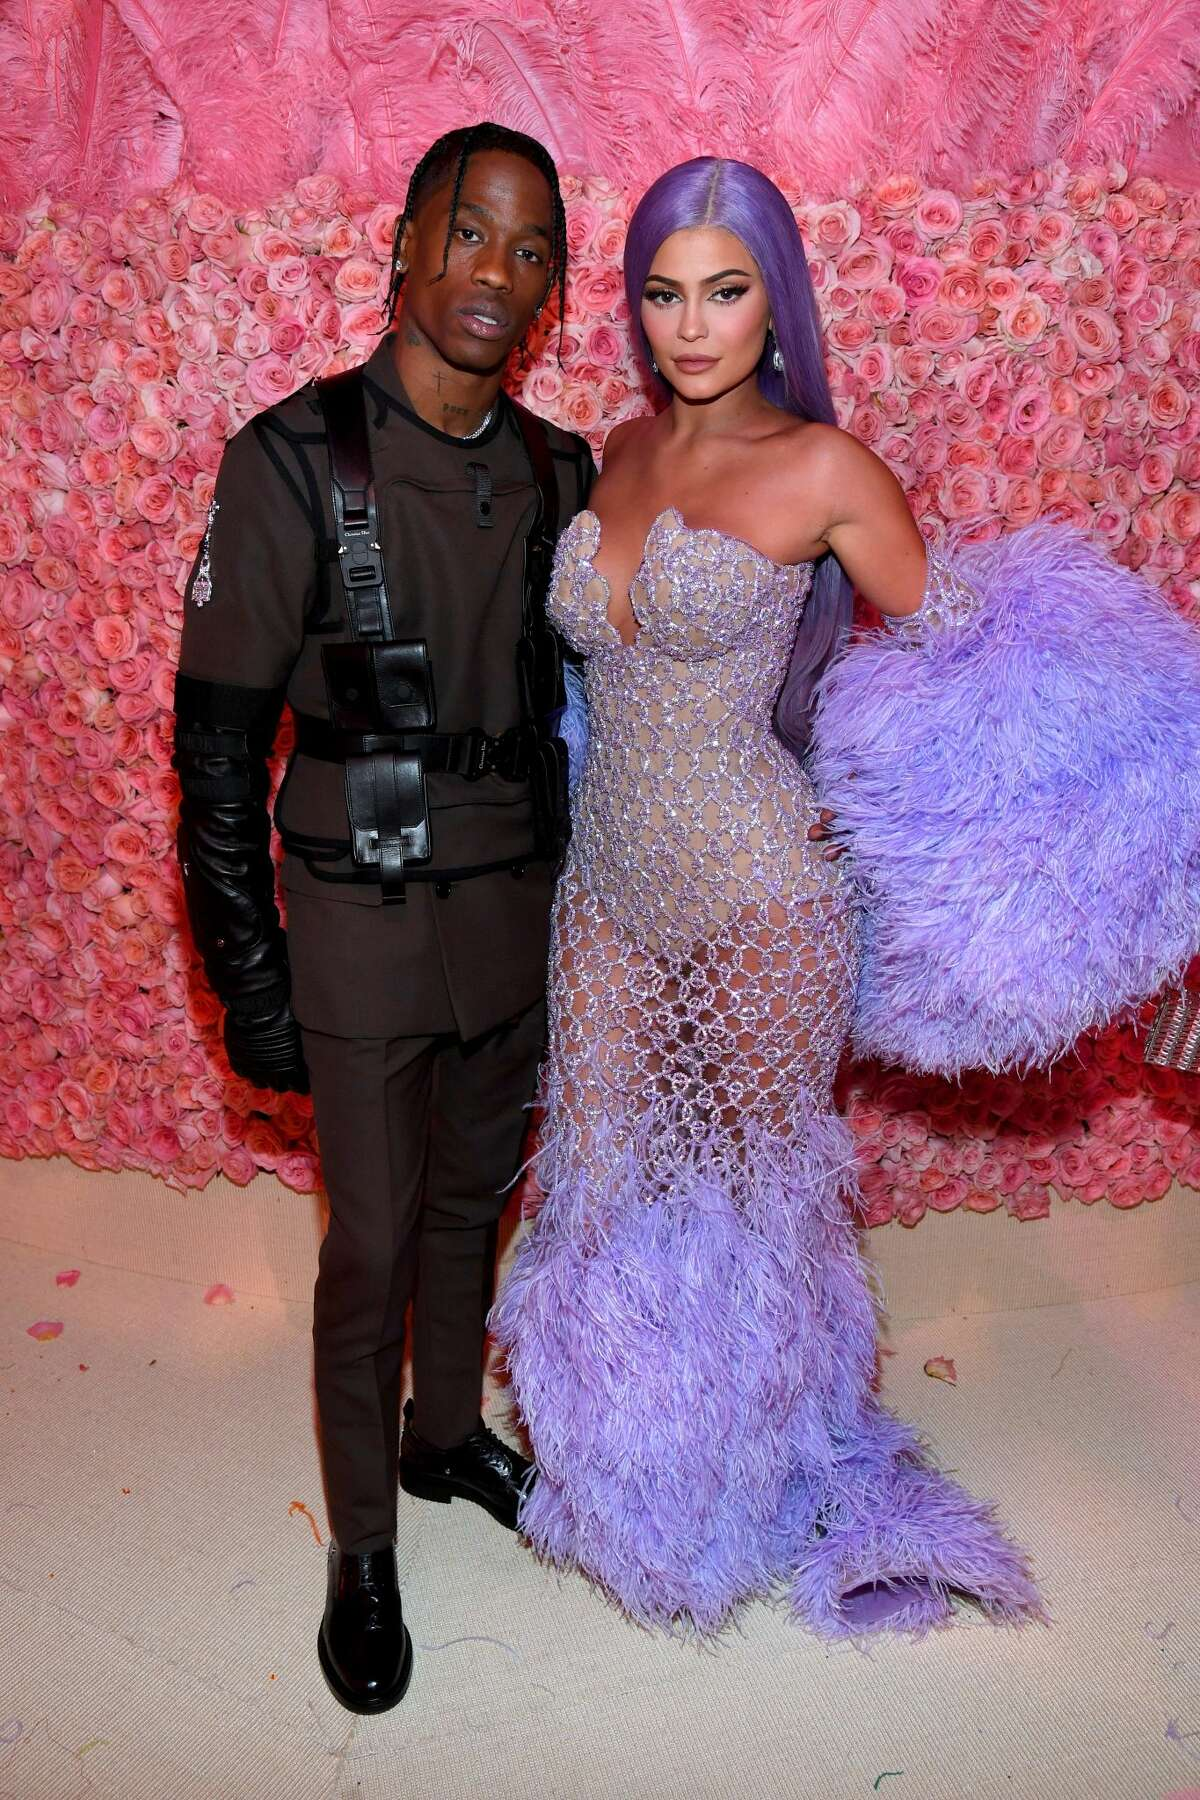 NEW YORK, NEW YORK - MAY 06: (EXCLUSIVE COVERAGE) Houston's Travis Scott and Kylie Jenner attends The 2019 Met Gala Celebrating Camp: Notes on Fashion at Metropolitan Museum of Art on May 06, 2019 in New York City. (Photo by Kevin Mazur/MG19/Getty Images for The Met Museum/Vogue)